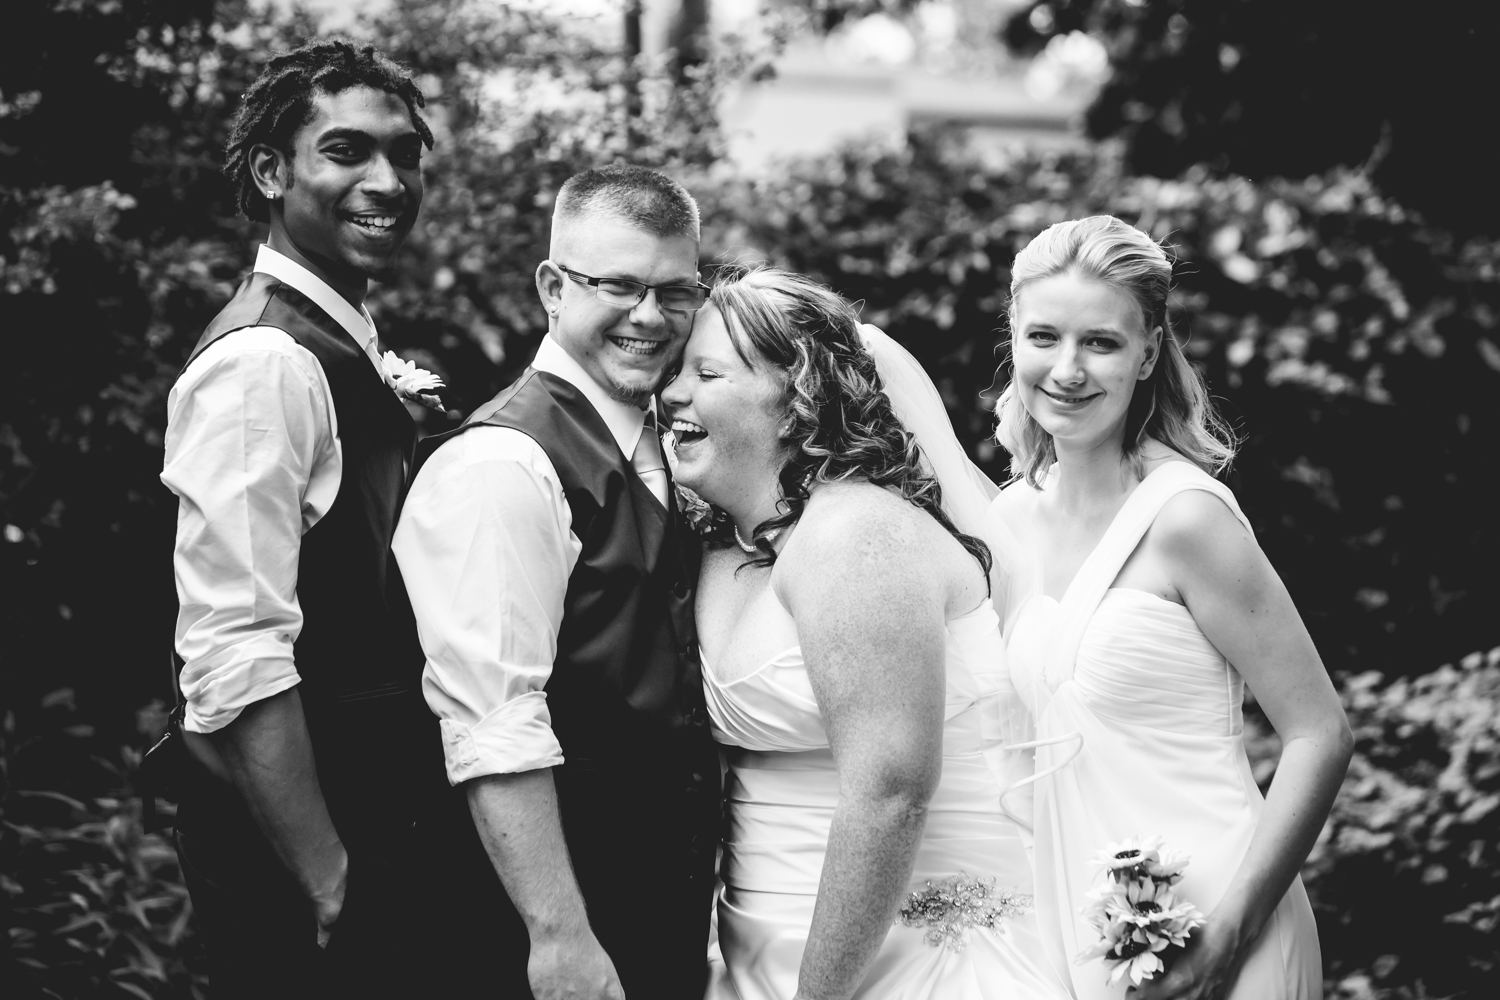 Best man and the maid of honor.Photographed by JMGant Photography.